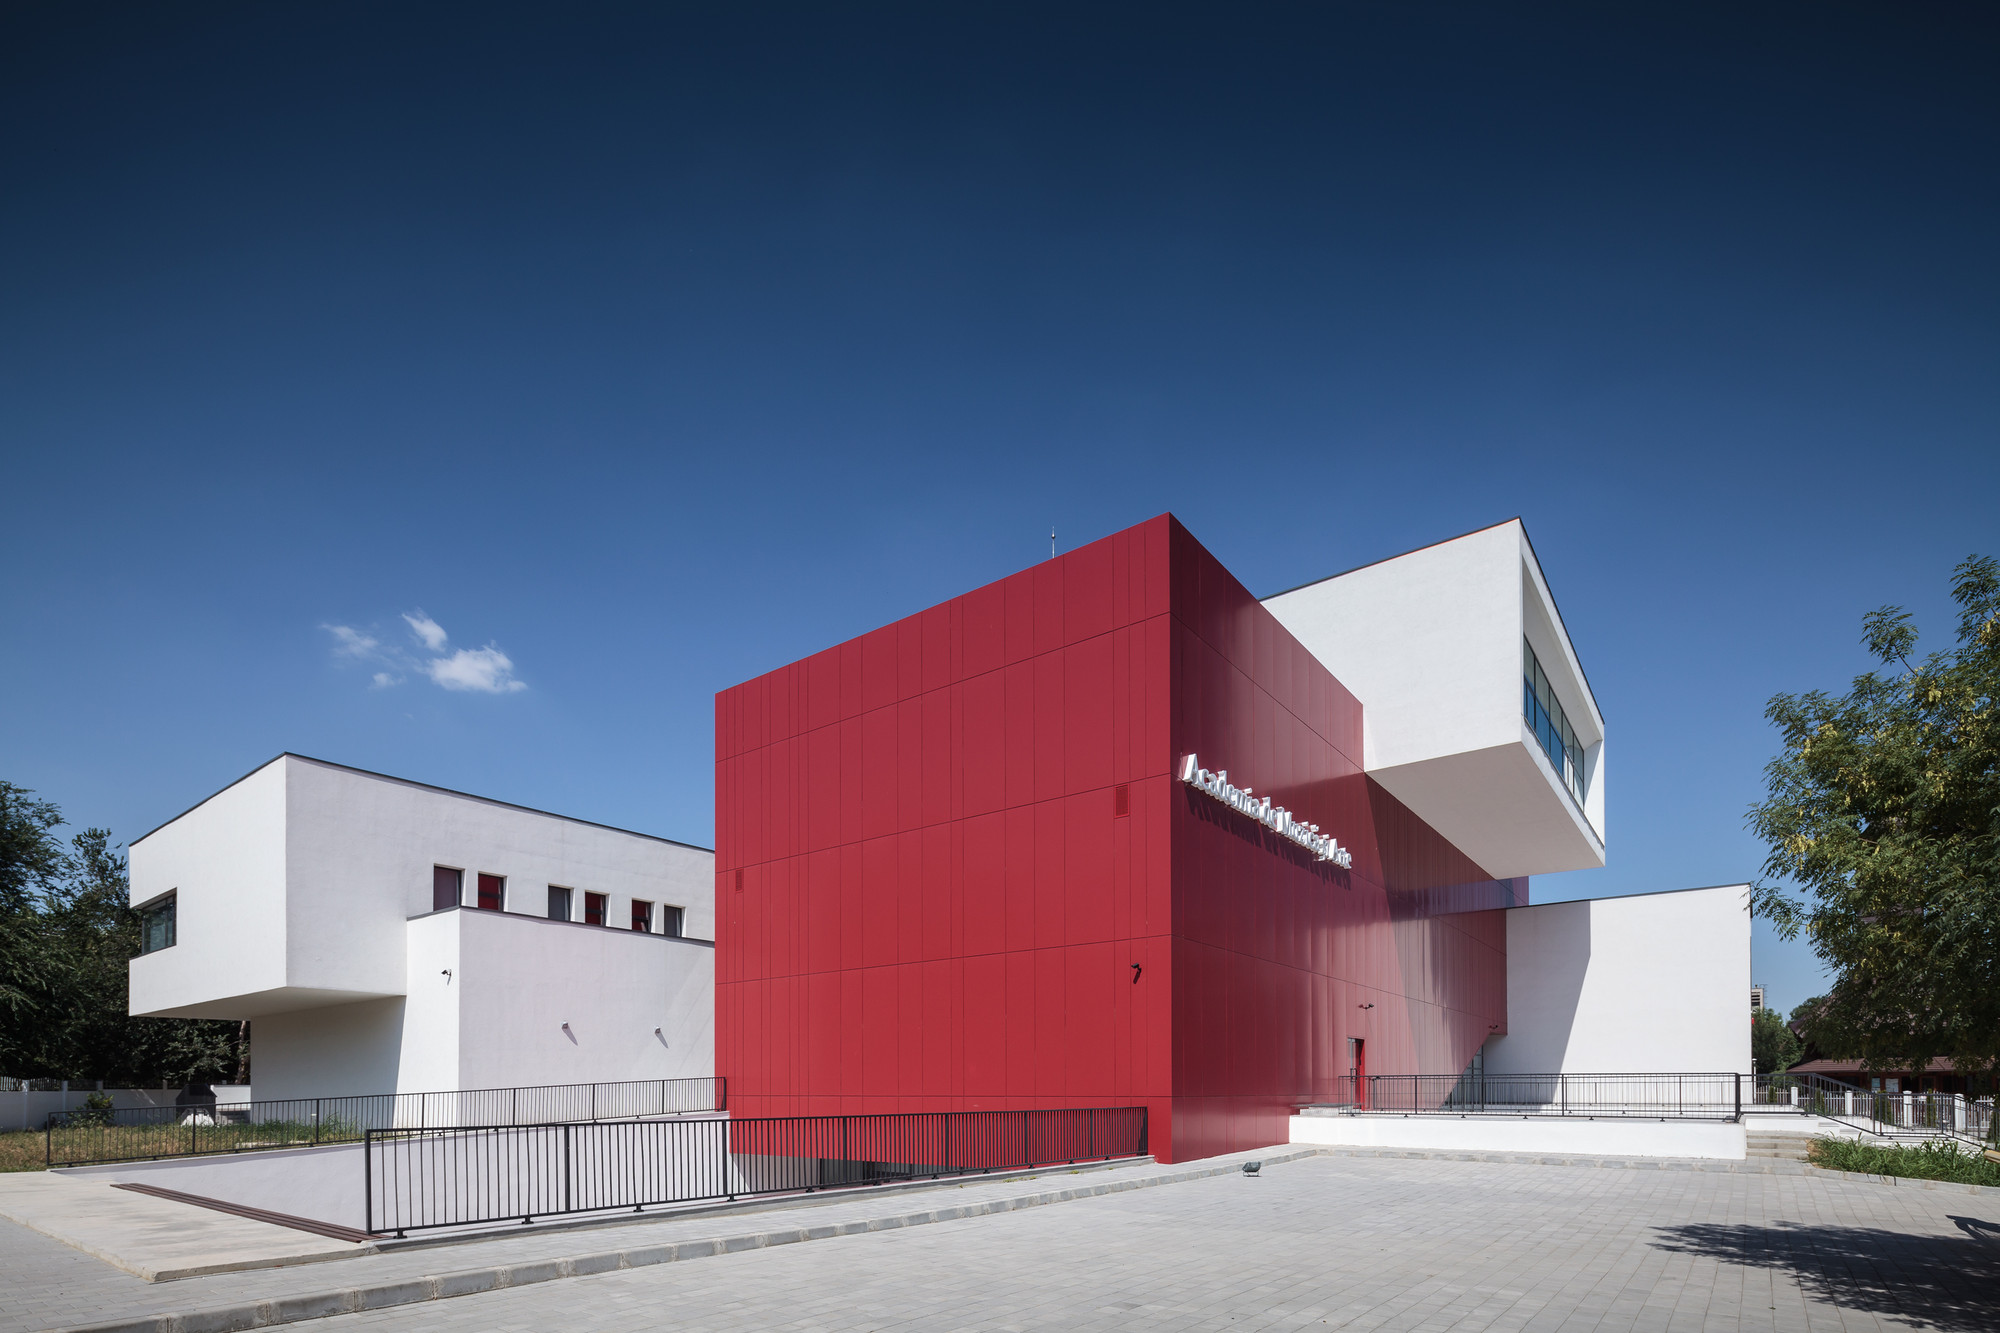 Gallery of school of music and arts ltfb studio 9 for Arquitectura de interiores donde estudiar